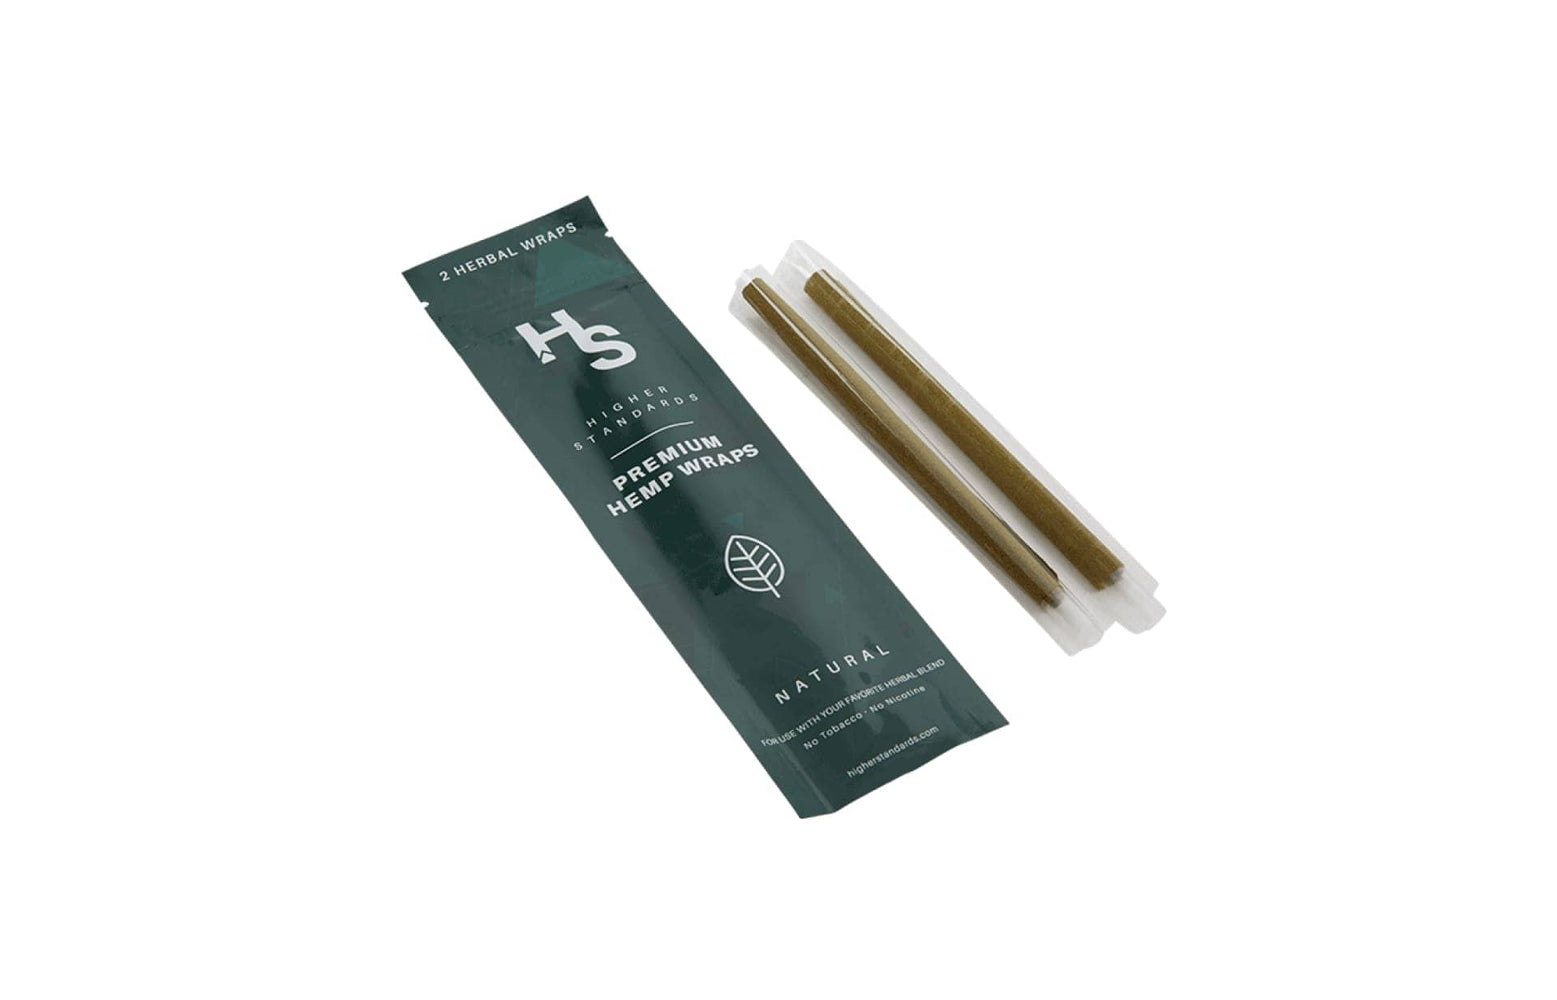 Higher Standards Accessories Higher Standards Premium Hemp Wraps